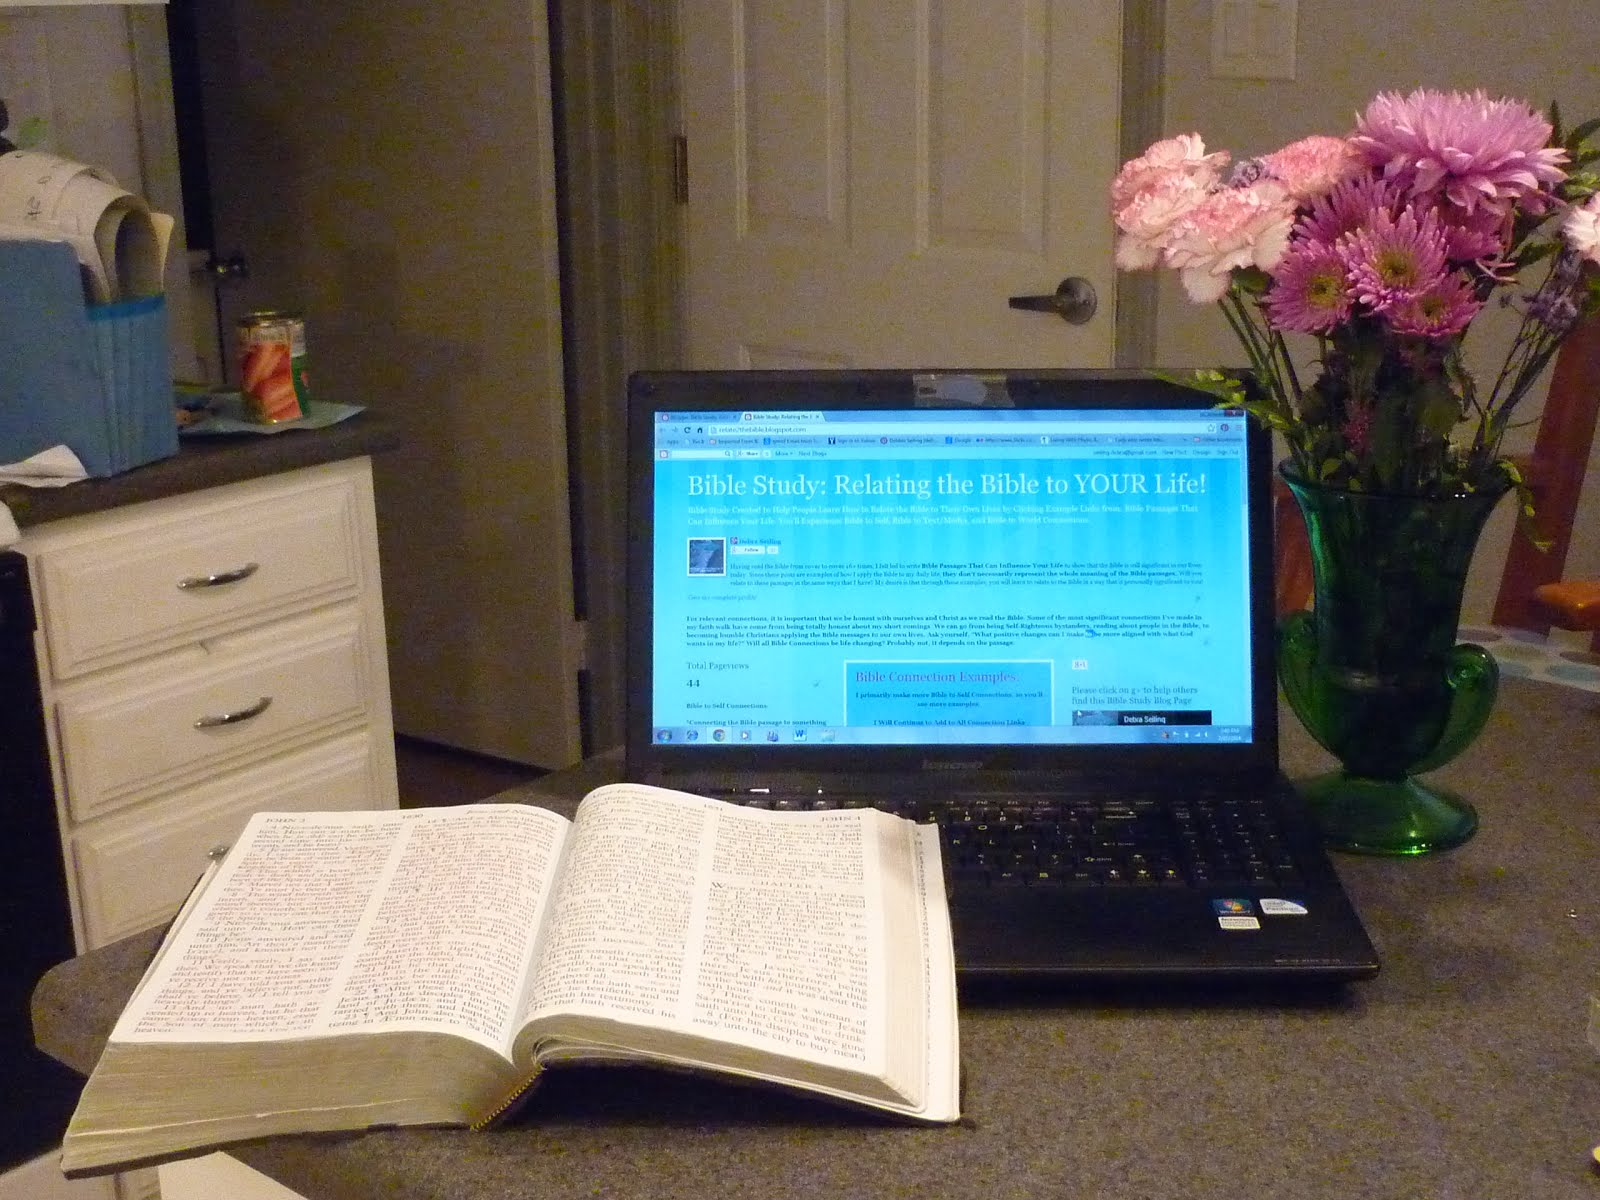 Bible Study:Relating the Bible to YOUR LIfe!